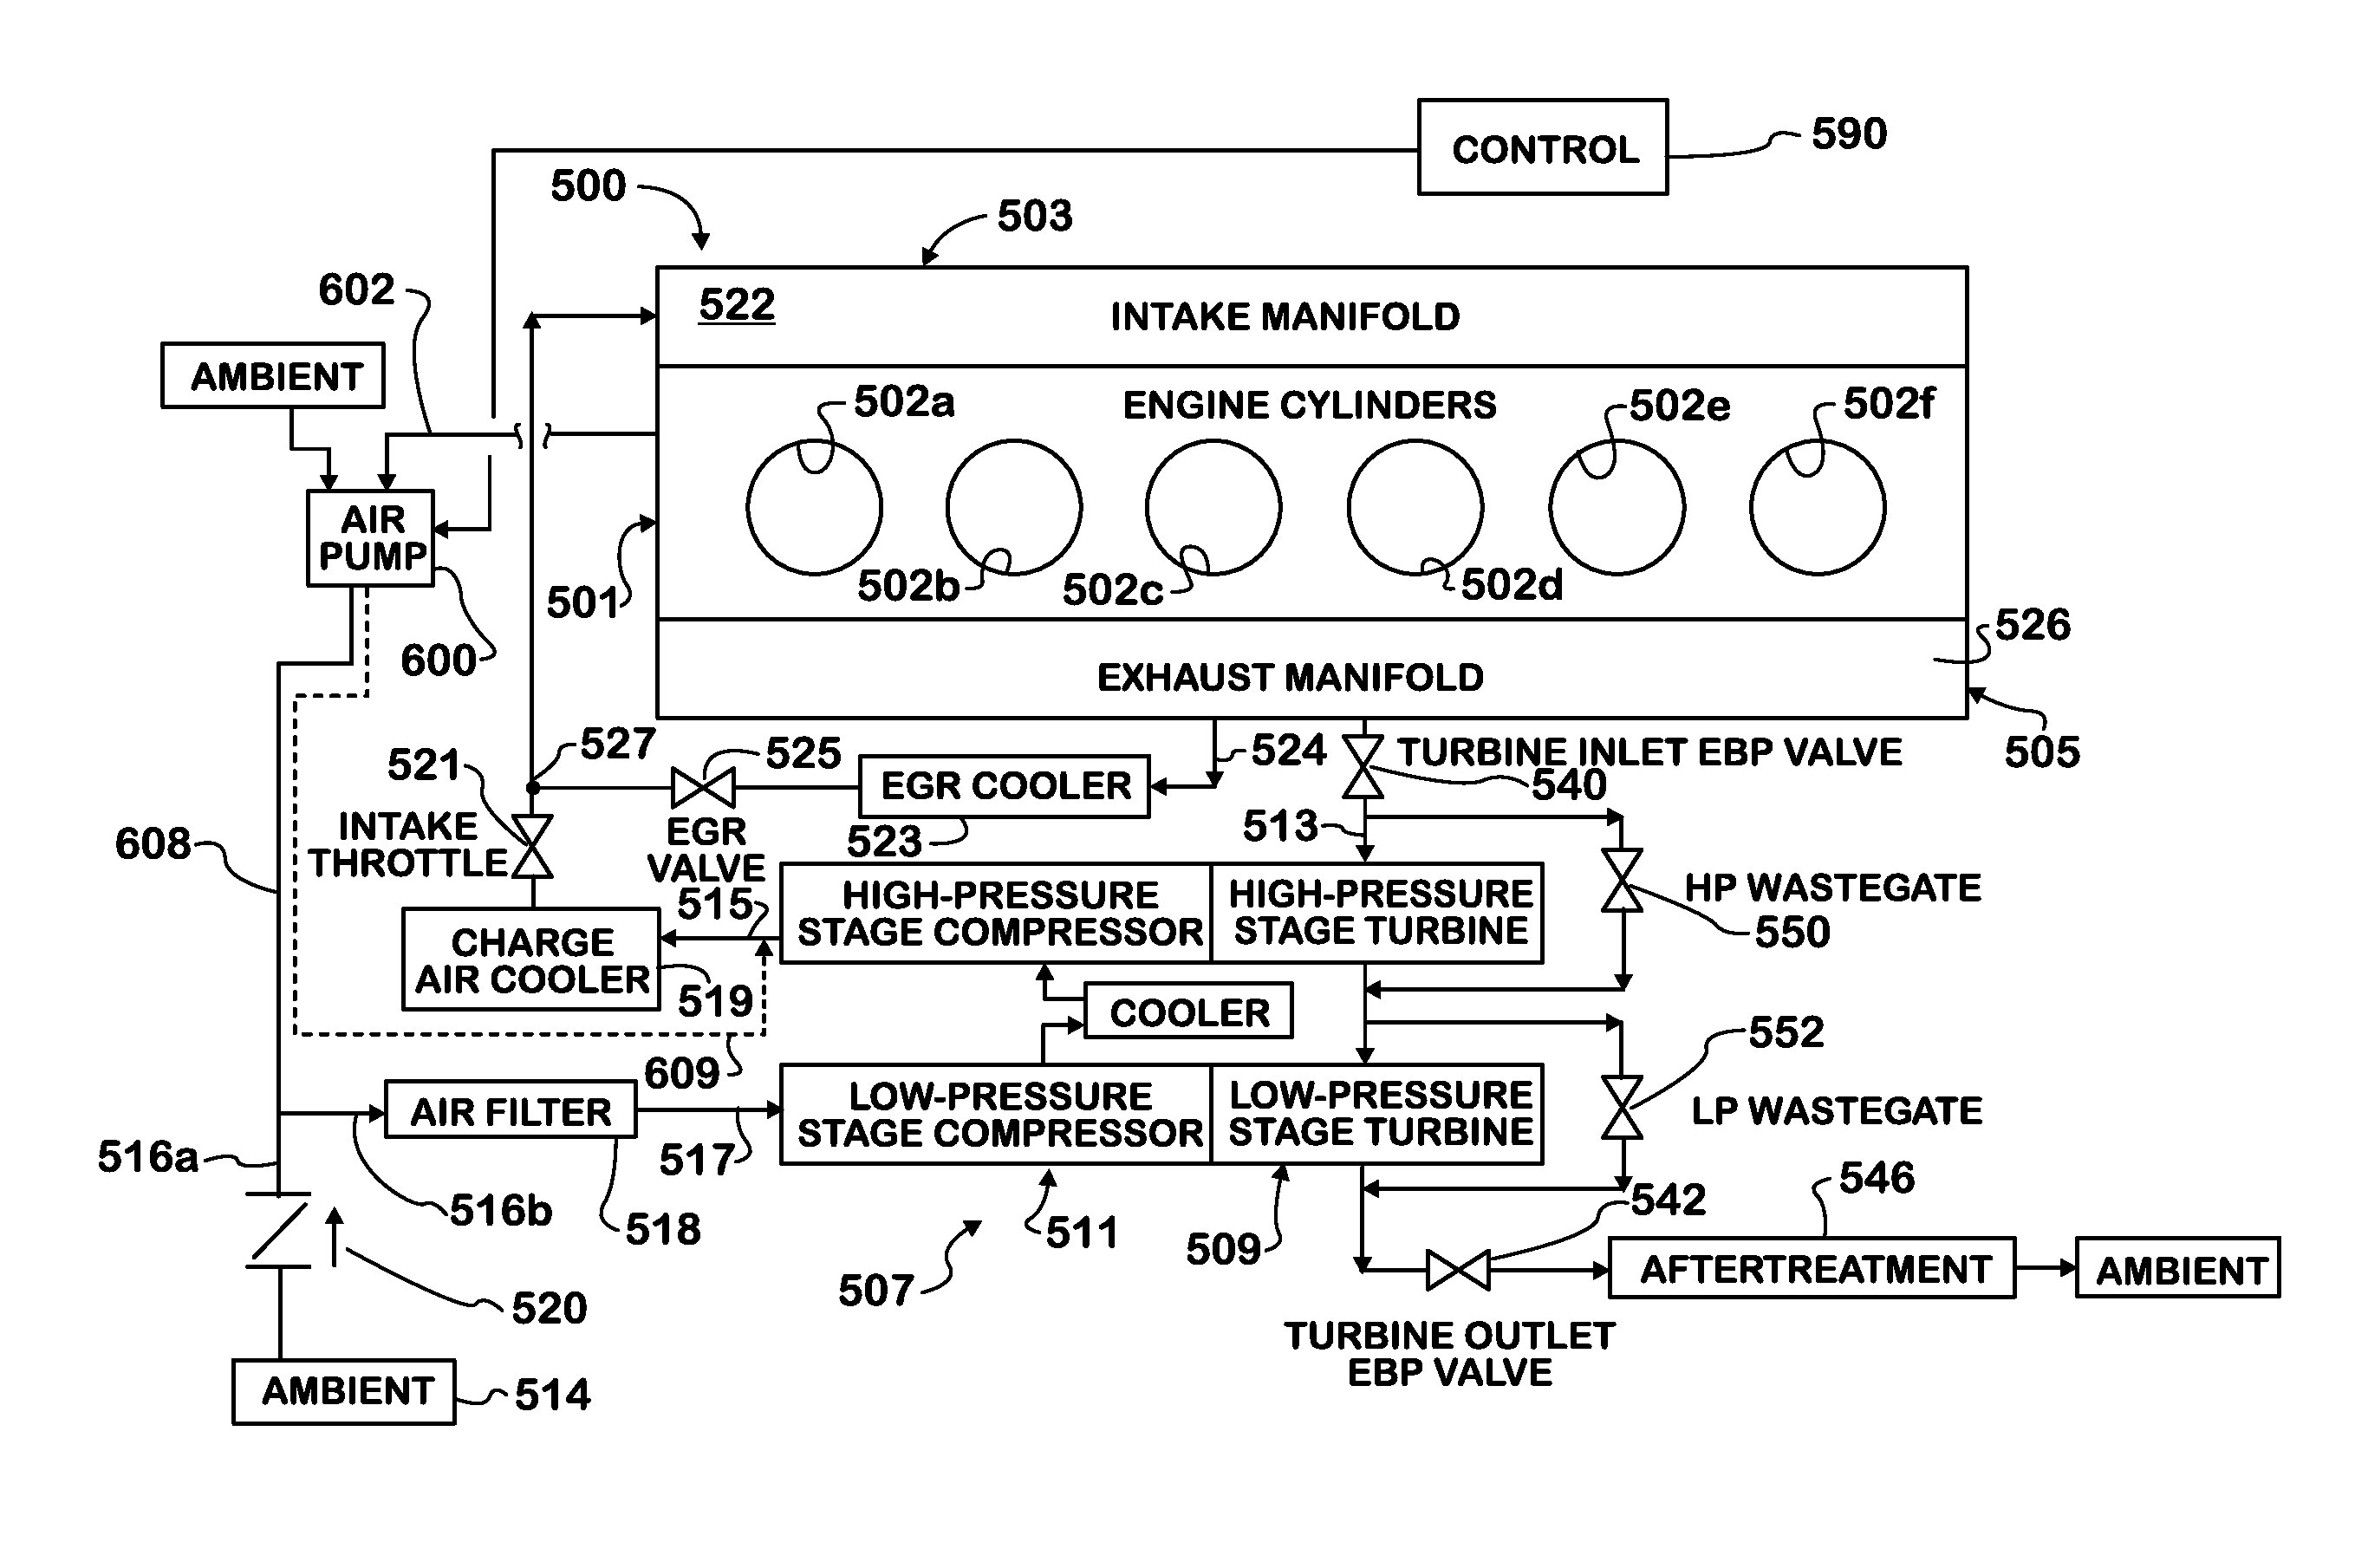 jacobs engine brake wiring diagram patent us8281587 - supercharged boost-assist engine brake ... #15